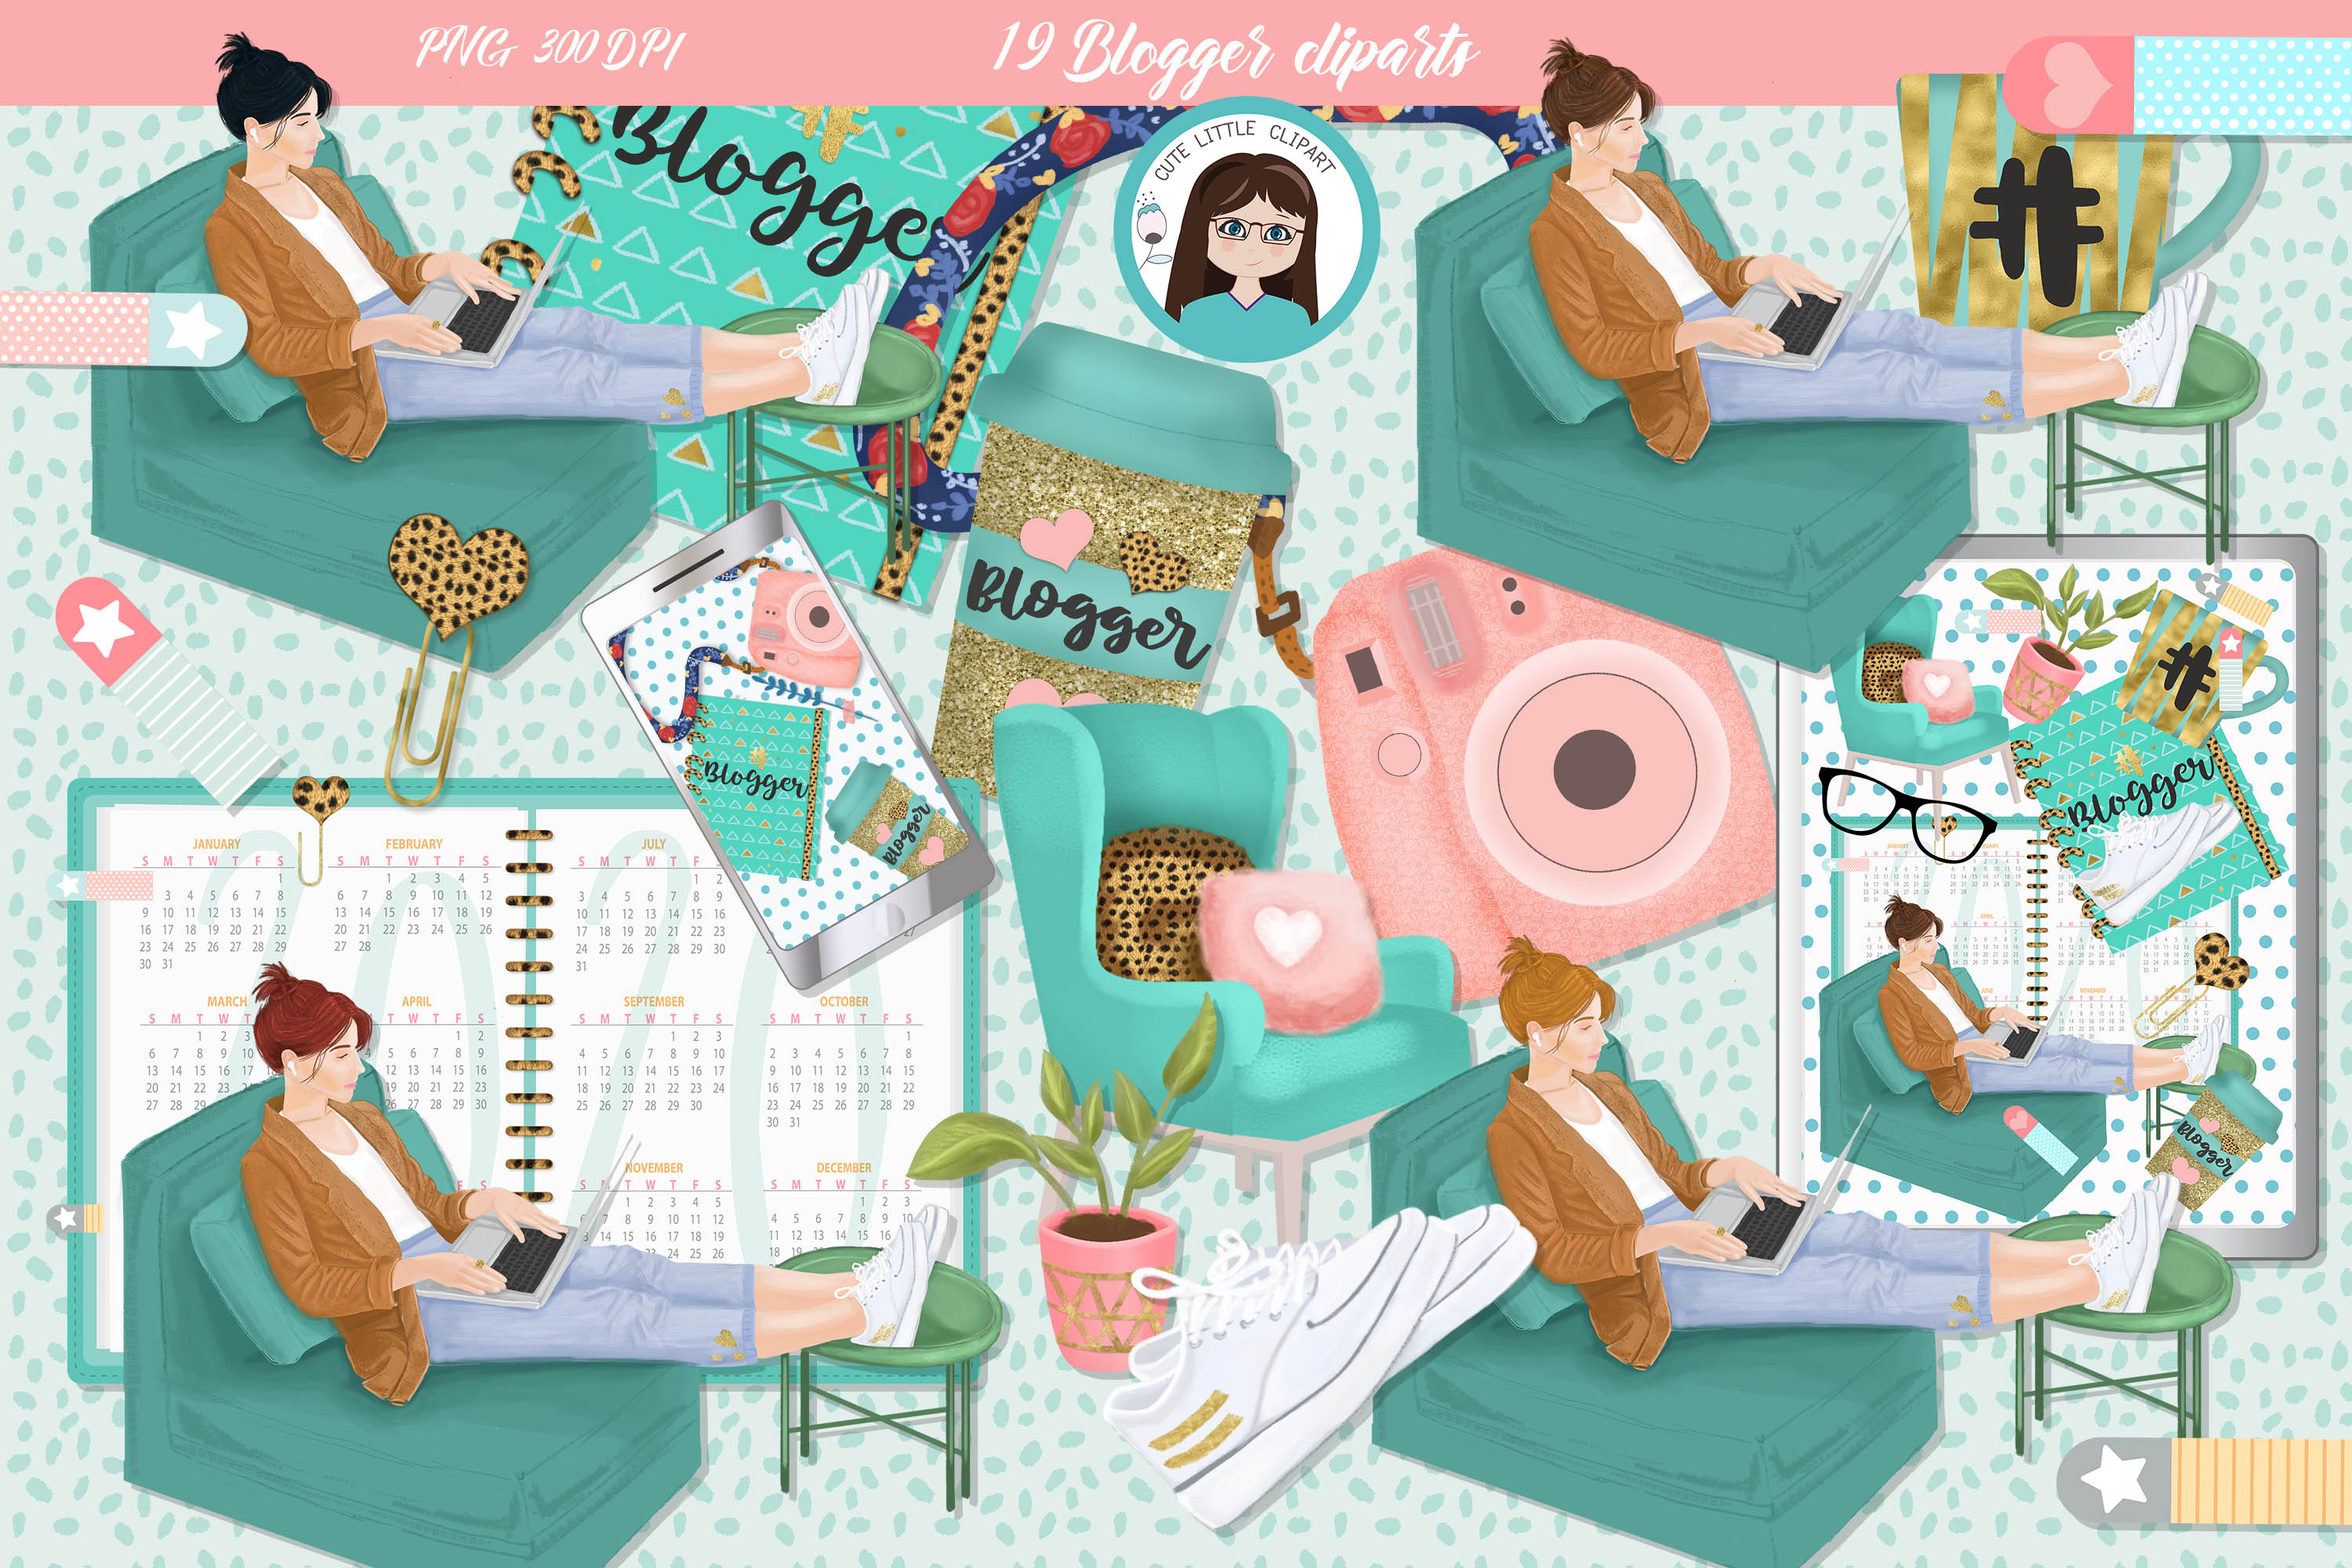 Download Free Blogger Clipart Graphic By Cutelittleclipart Creative Fabrica for Cricut Explore, Silhouette and other cutting machines.